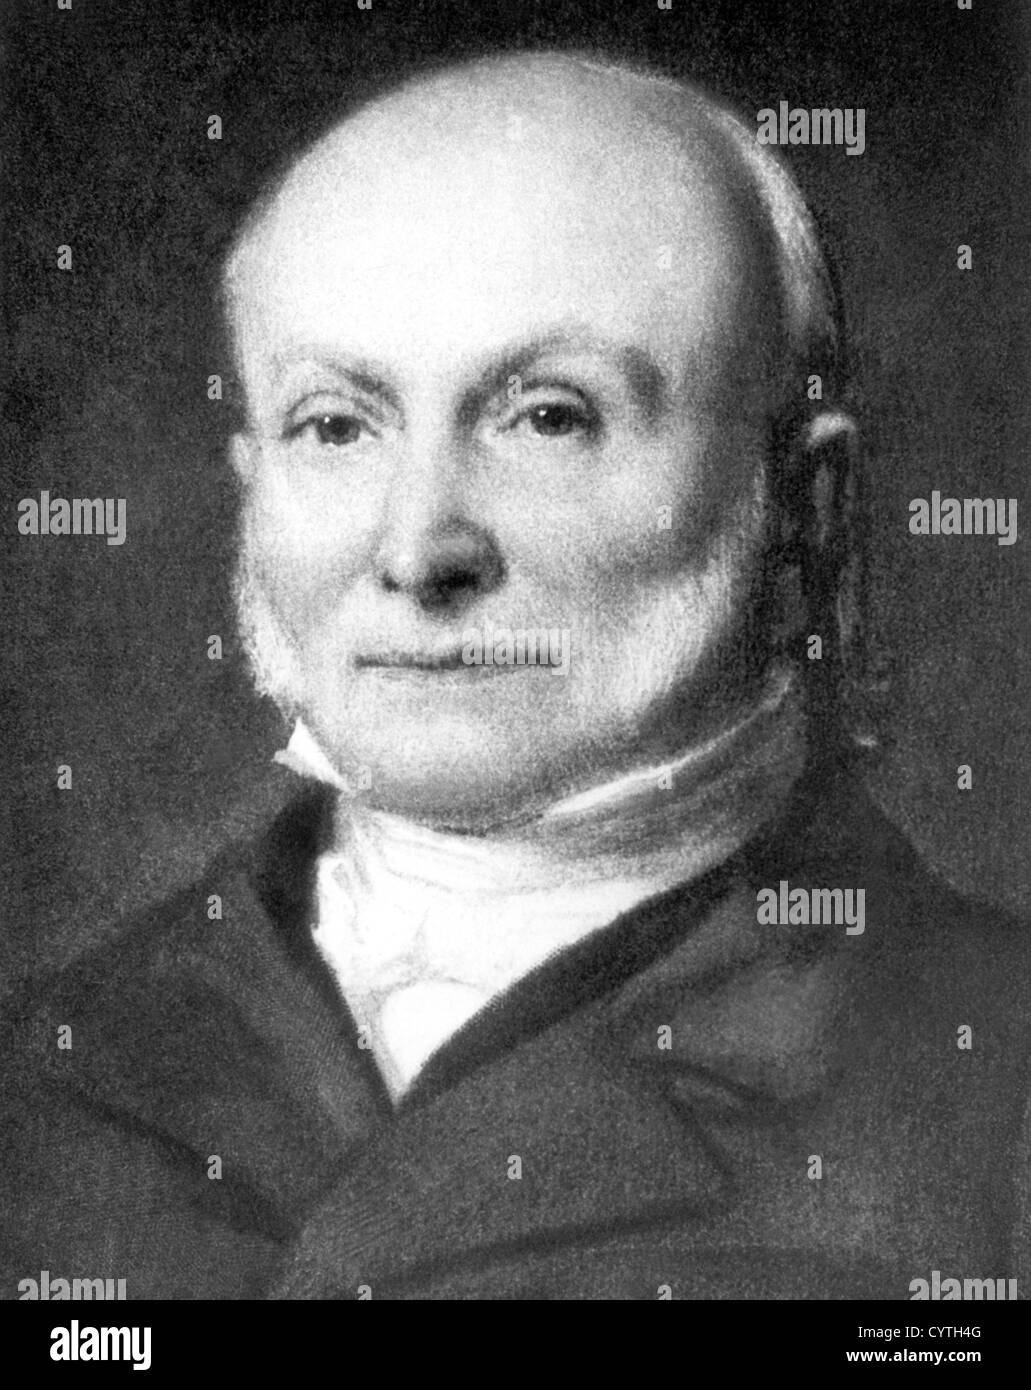 John Quincy Adams, 6th American president - Stock Image